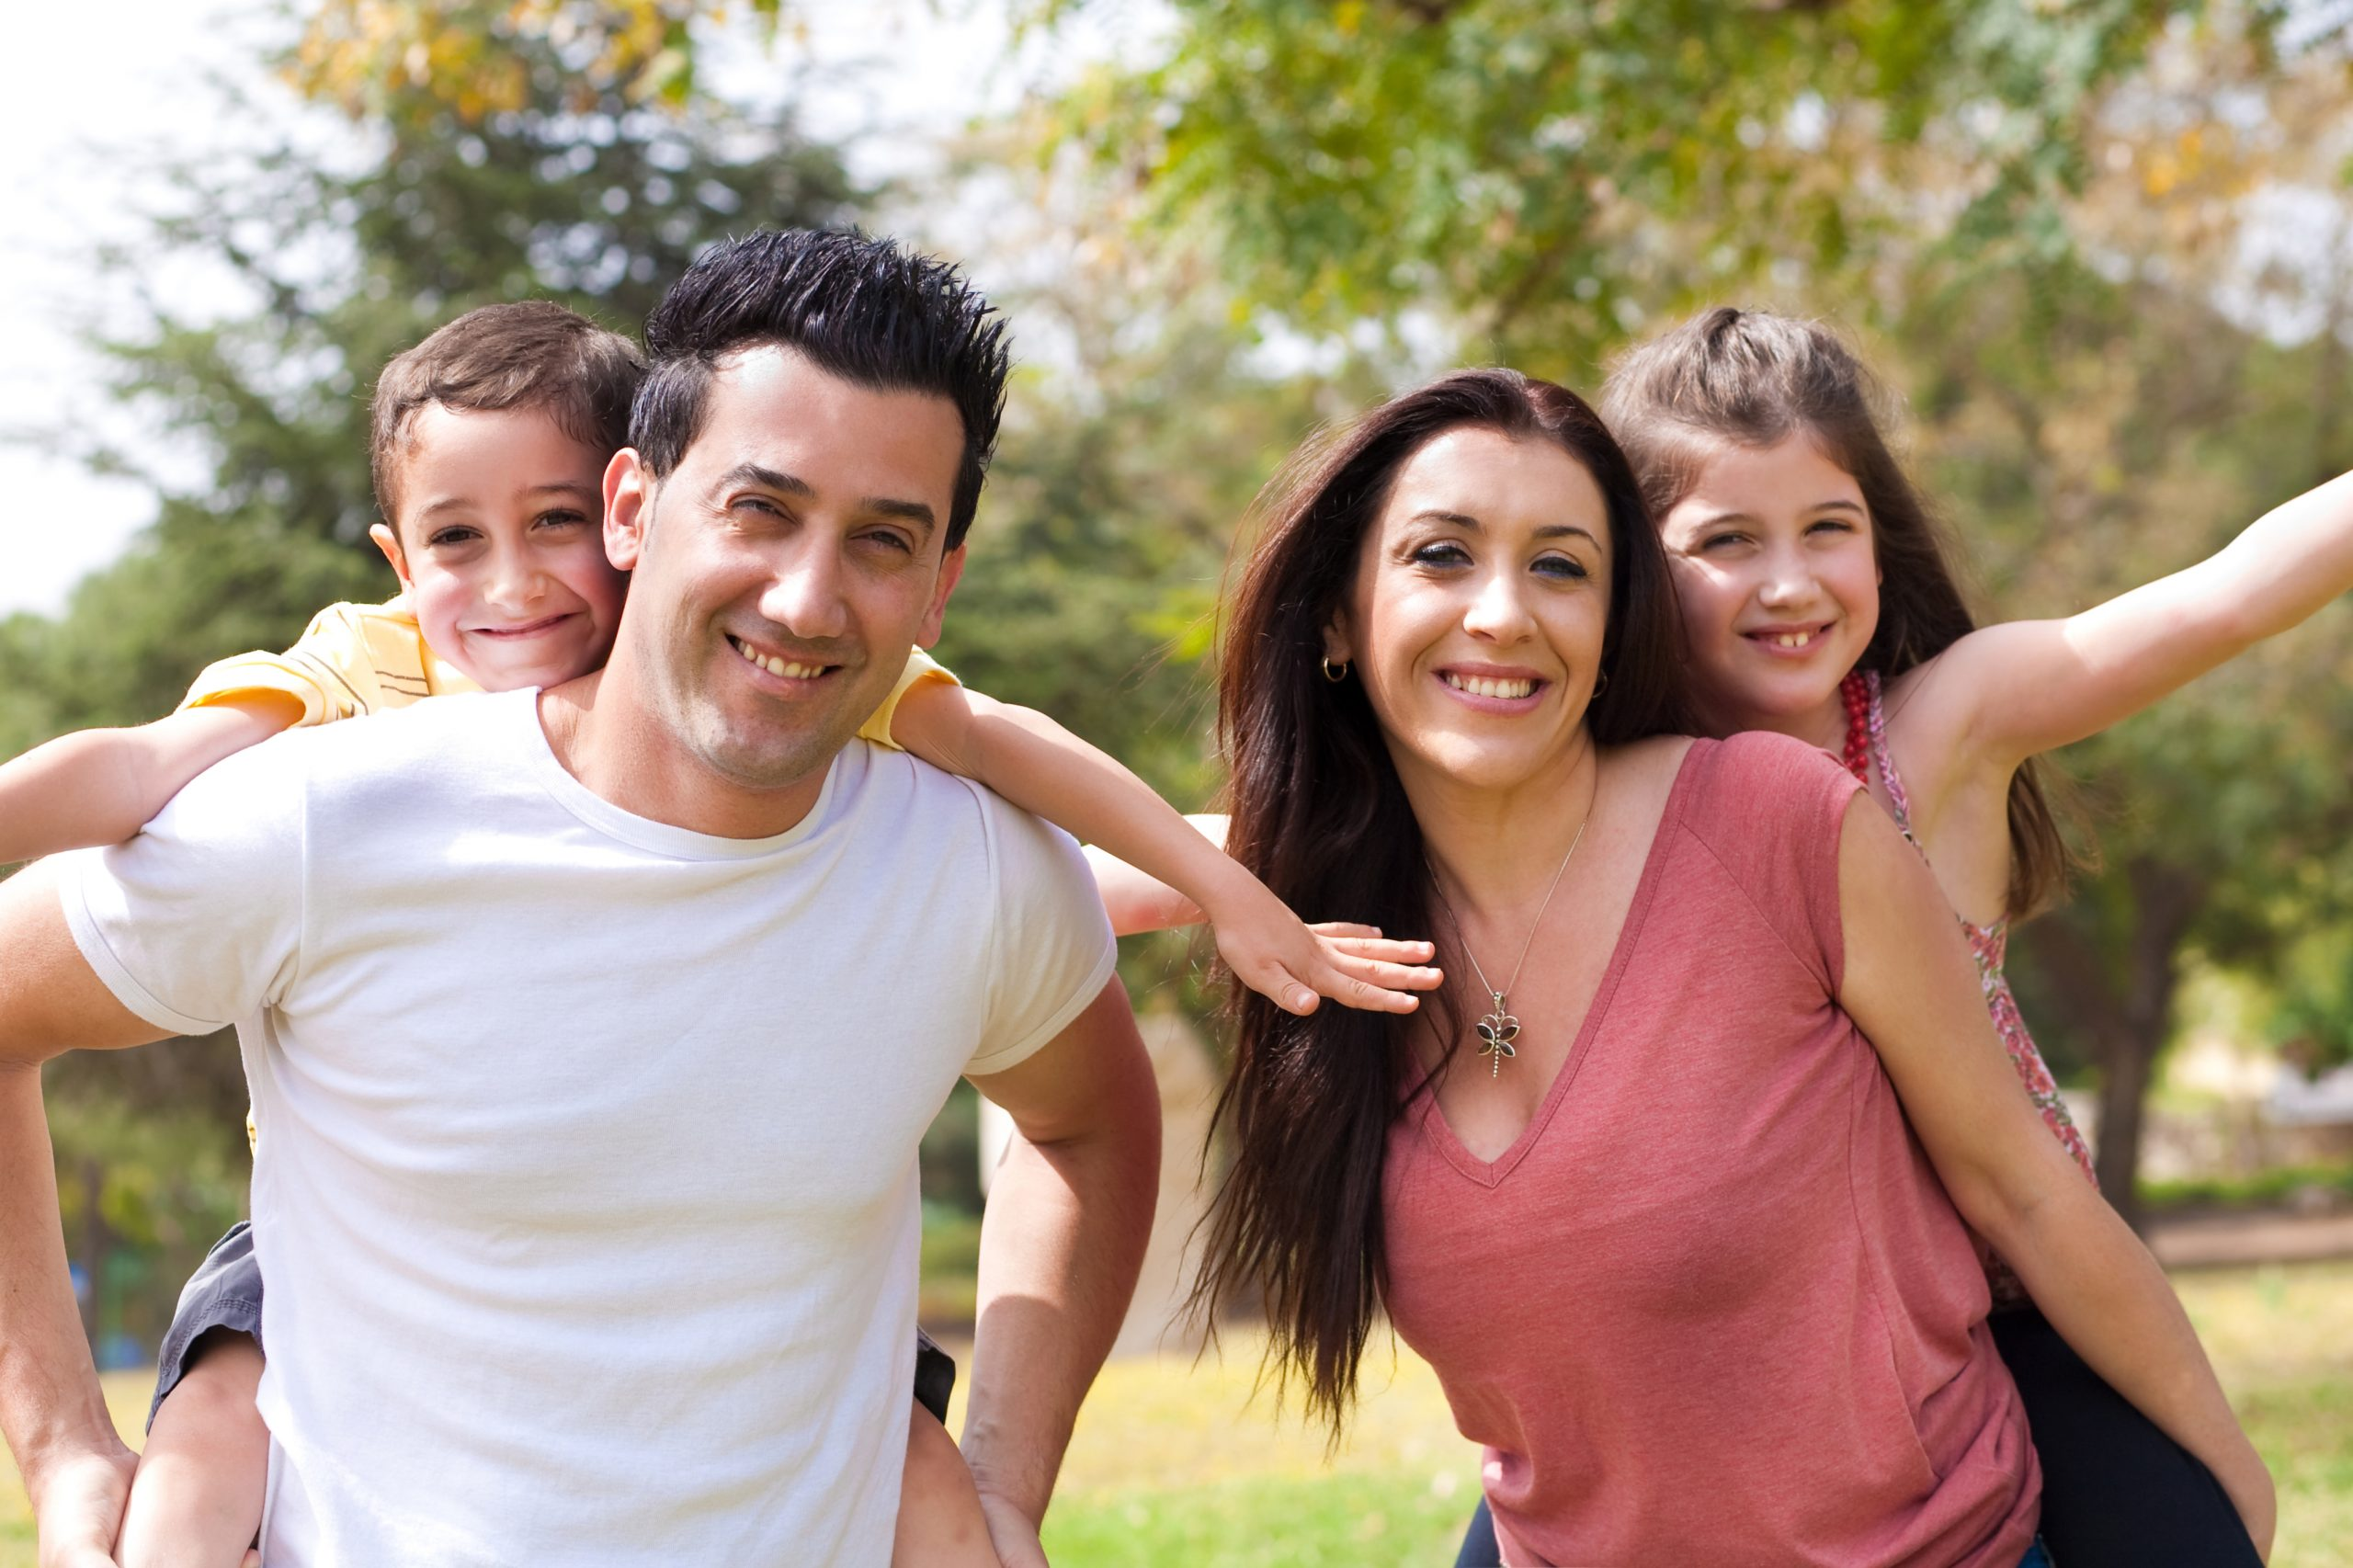 Wanting to be painfree, spending quality time with the family